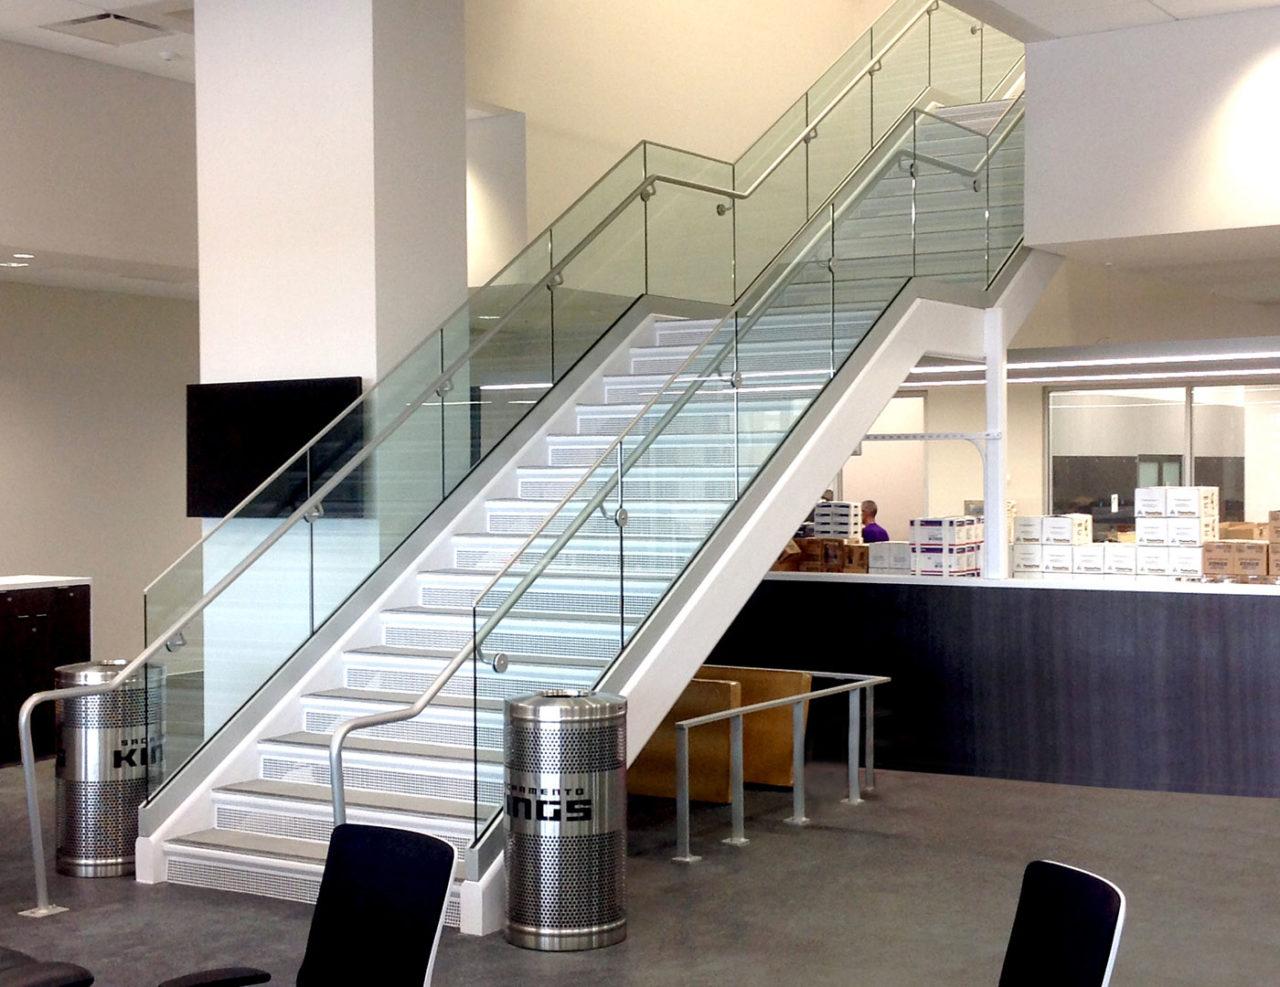 Track Rail glass railing on stairs of Golden 1 Center practice facility